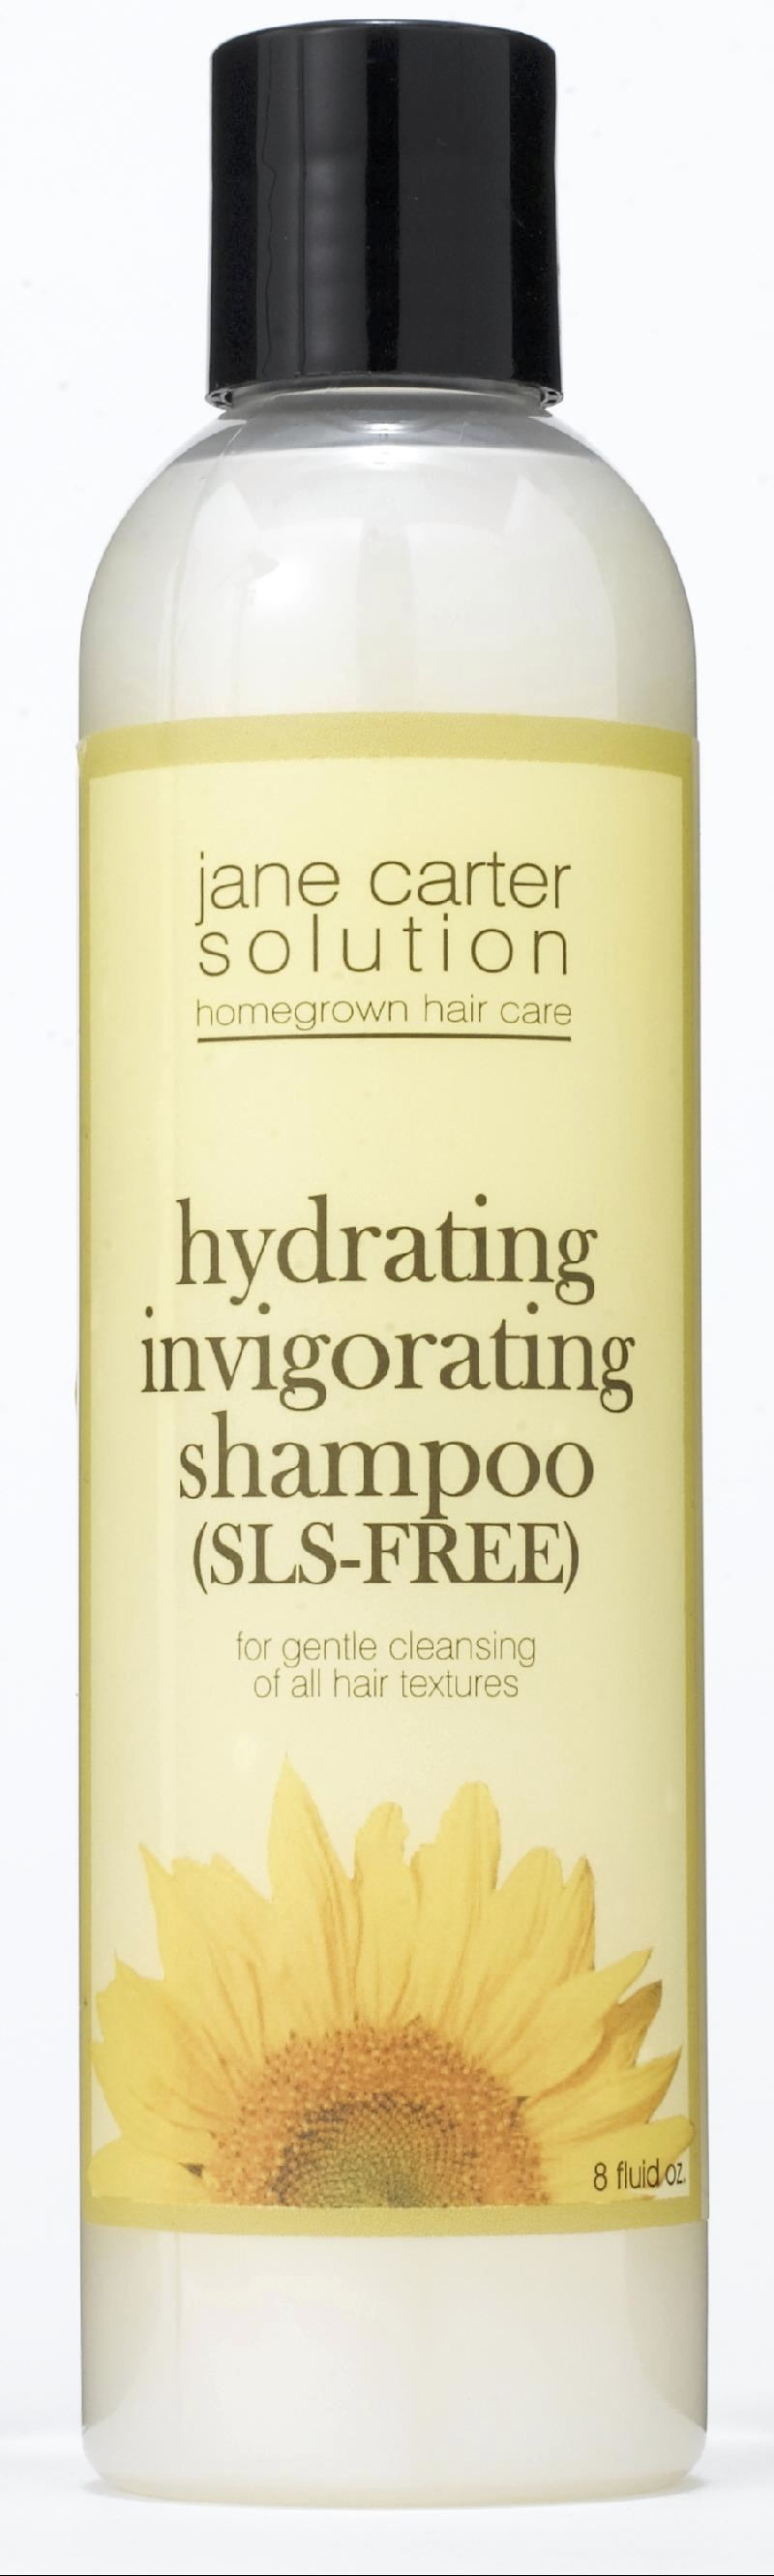 Hydrating Invigorating Shampoo